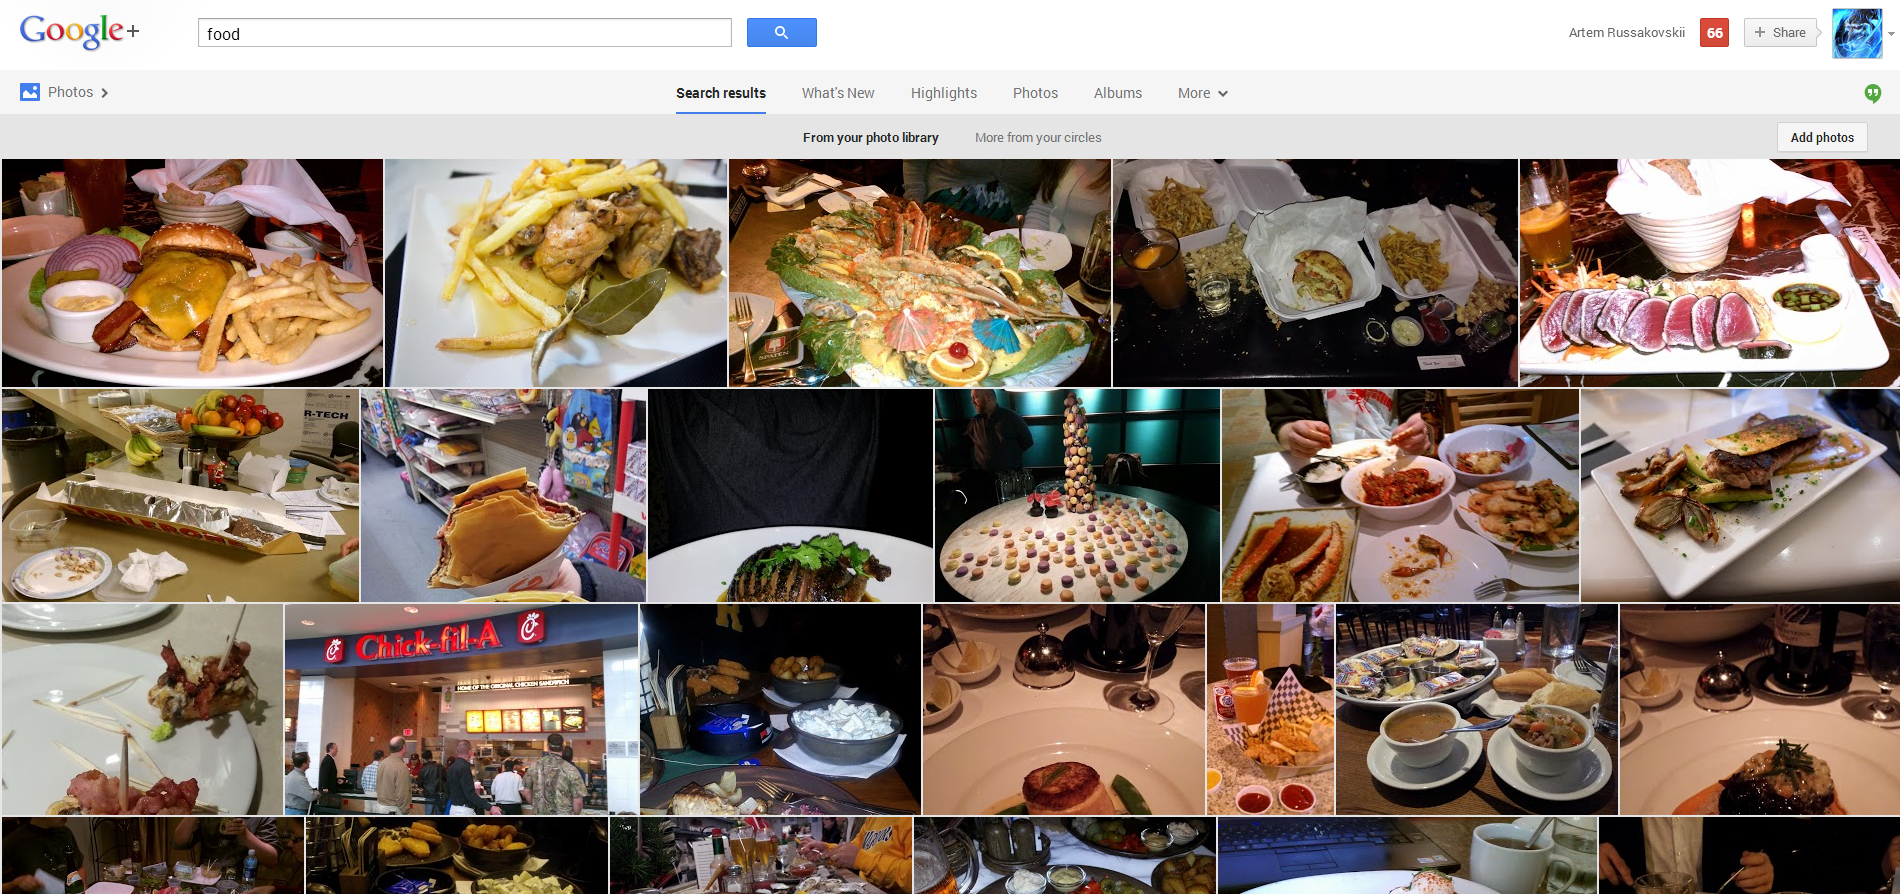 Google+'s Best New Unadvertised Feature: Photo Search With Visual Recognition - Try It On Your Own Pictures And Be Amazed